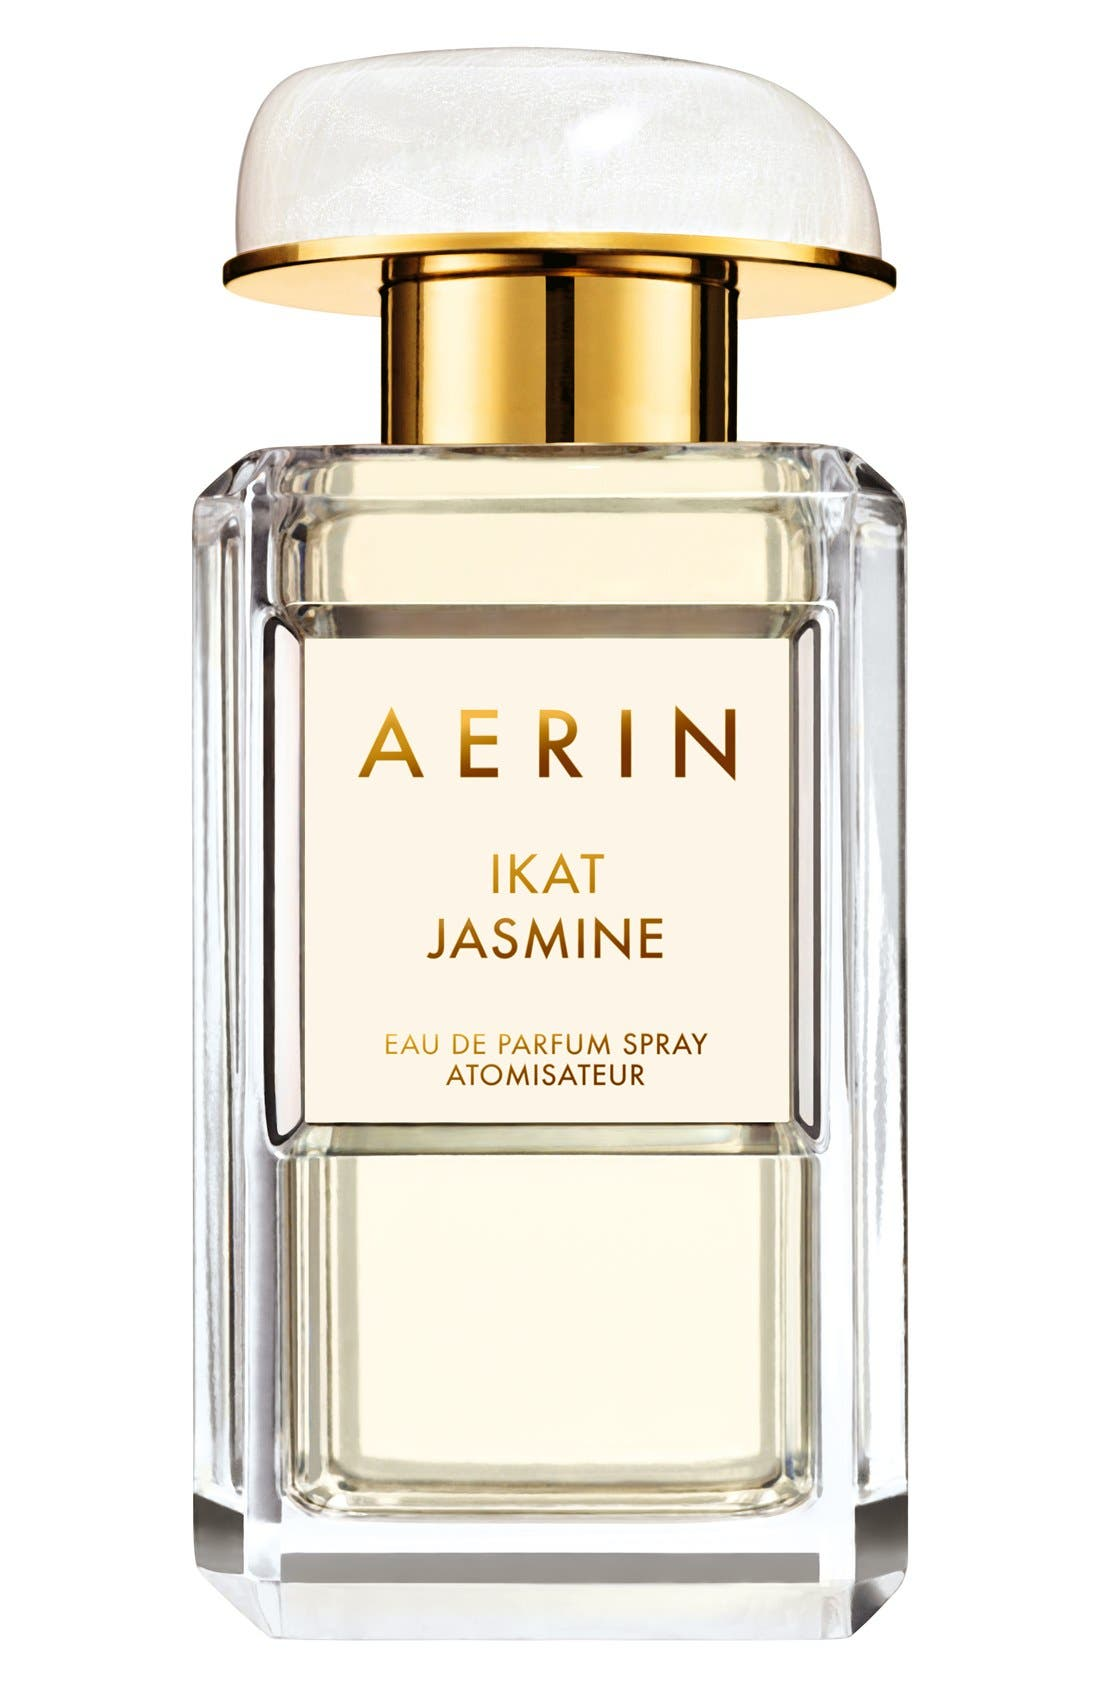 Aerin Beauty Ikat Jasmine Eau De Parfum Spray